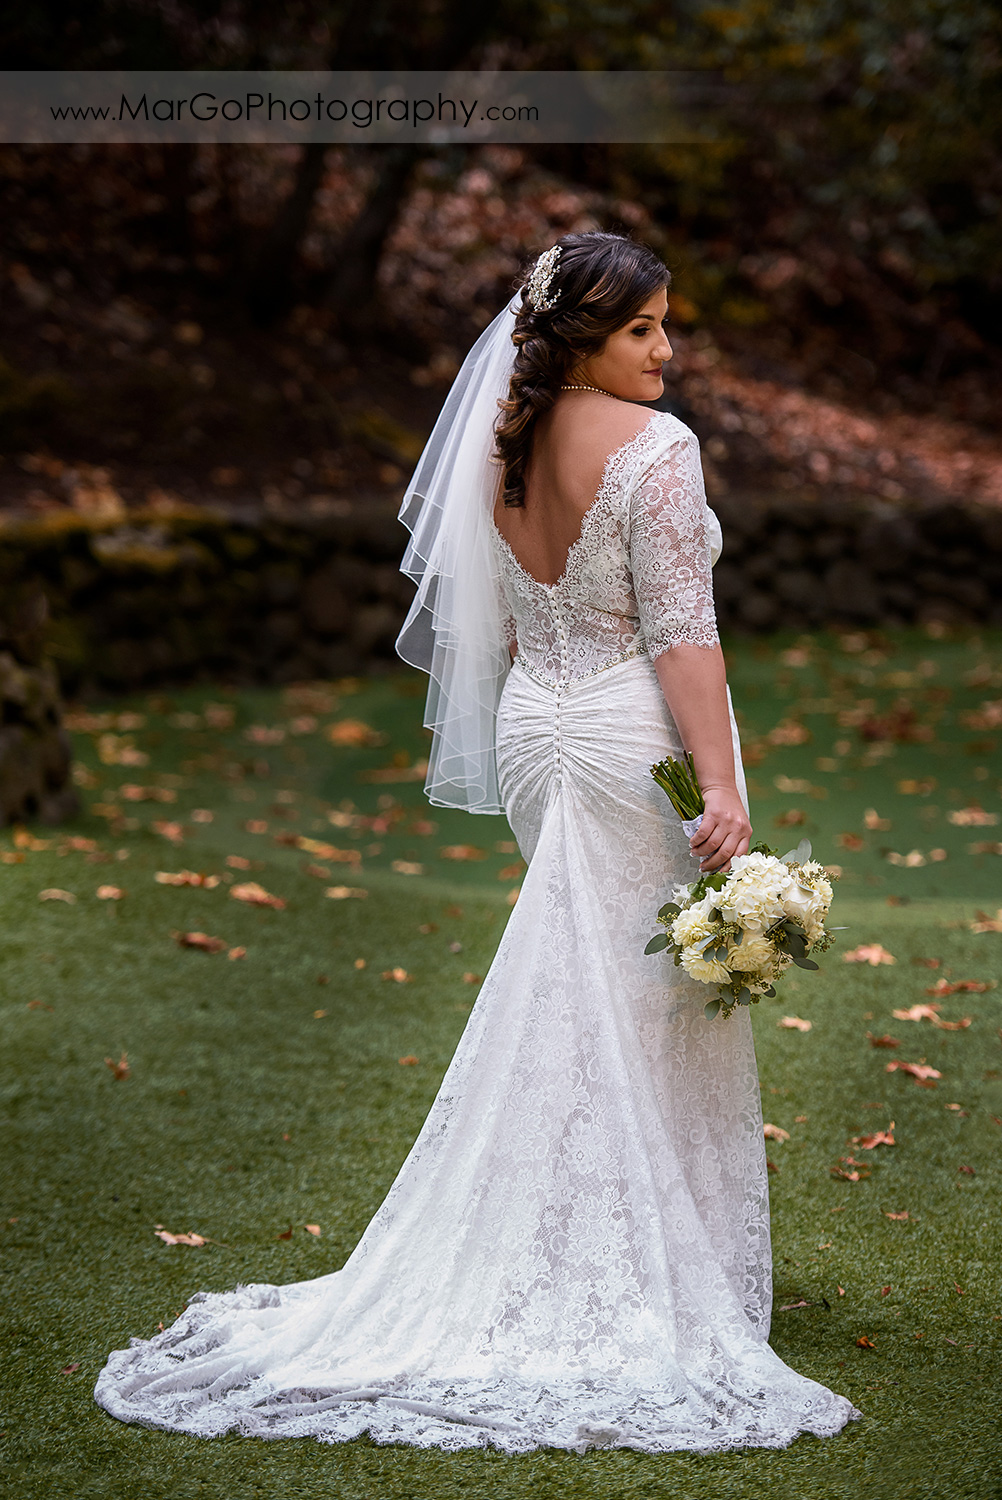 full body portrait of bride in white dress holding wedding bouquet at Saratoga Springs Cathedral Grove